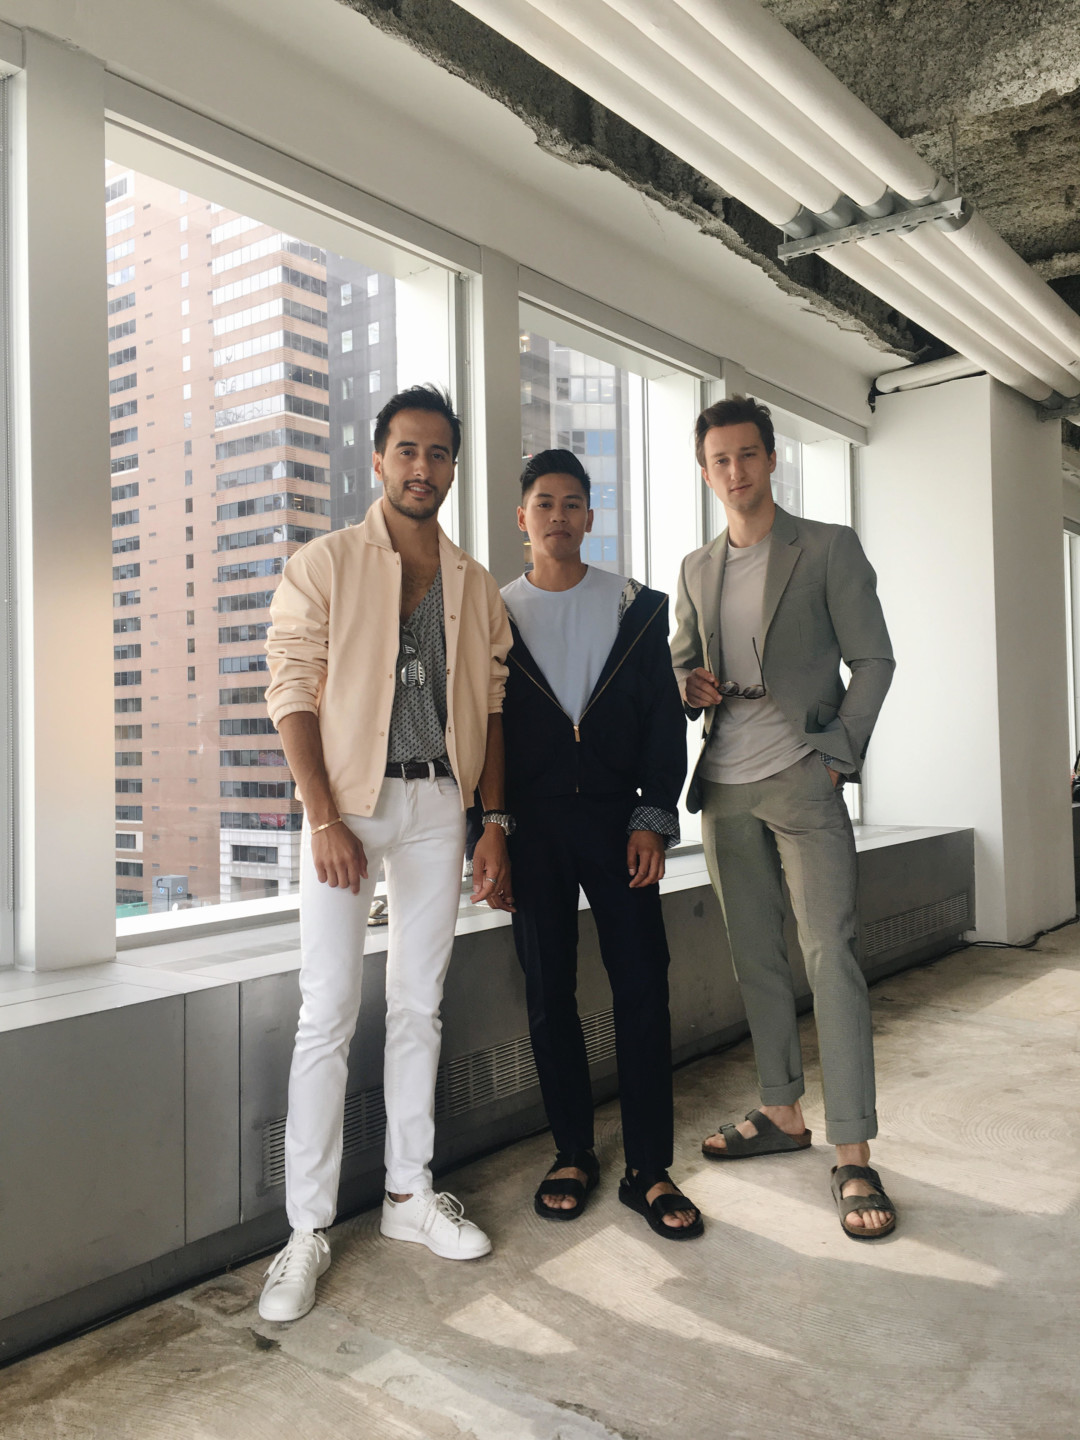 Moti Ankari, Anthony Urbano and Marcel Floruss at the Perry Ellis S/S '17 Presentation